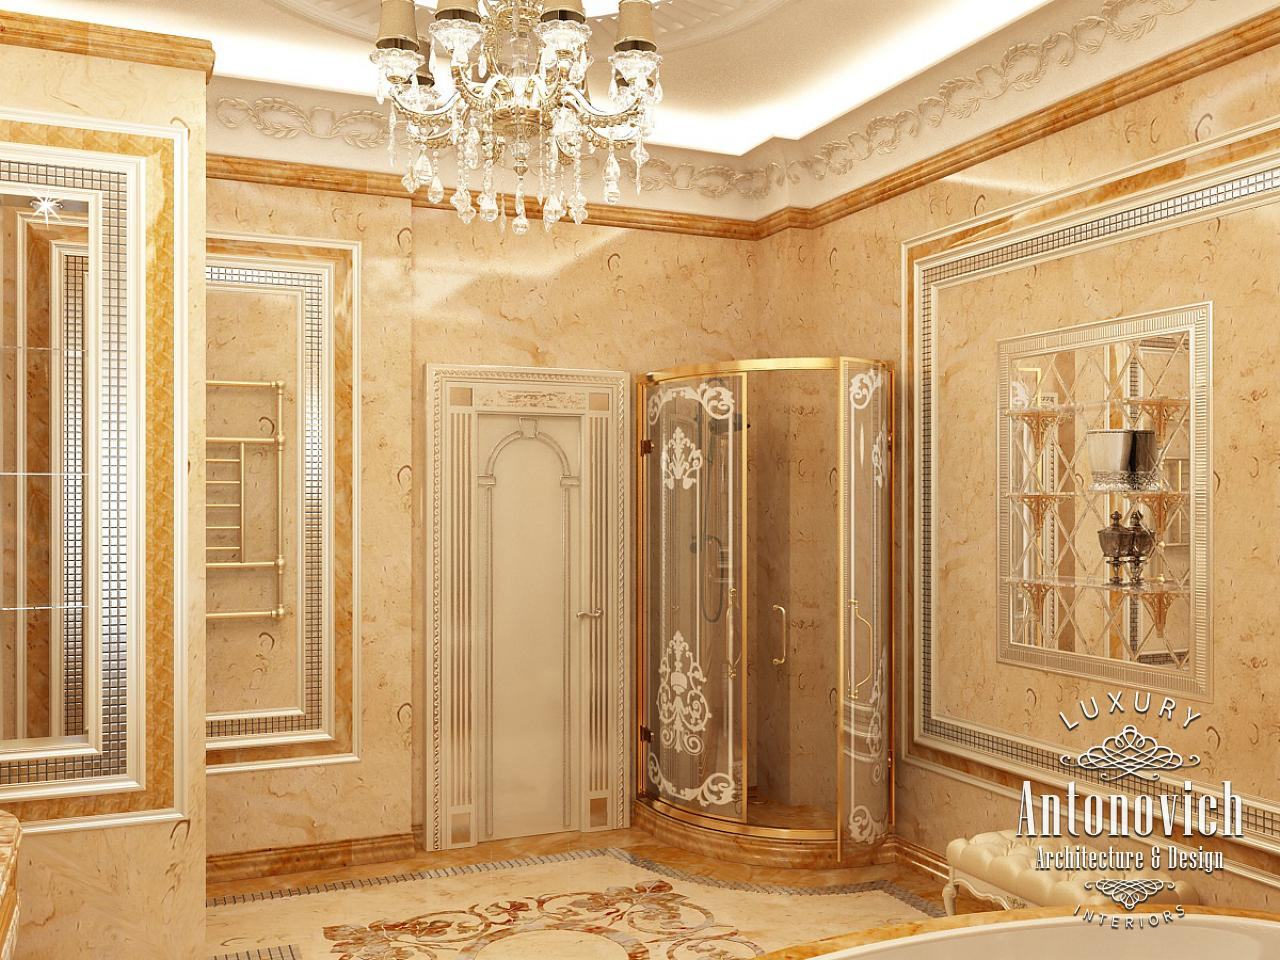 Luxury Antonovich Design Uae Bathroom Design Dubai Antonovich Design